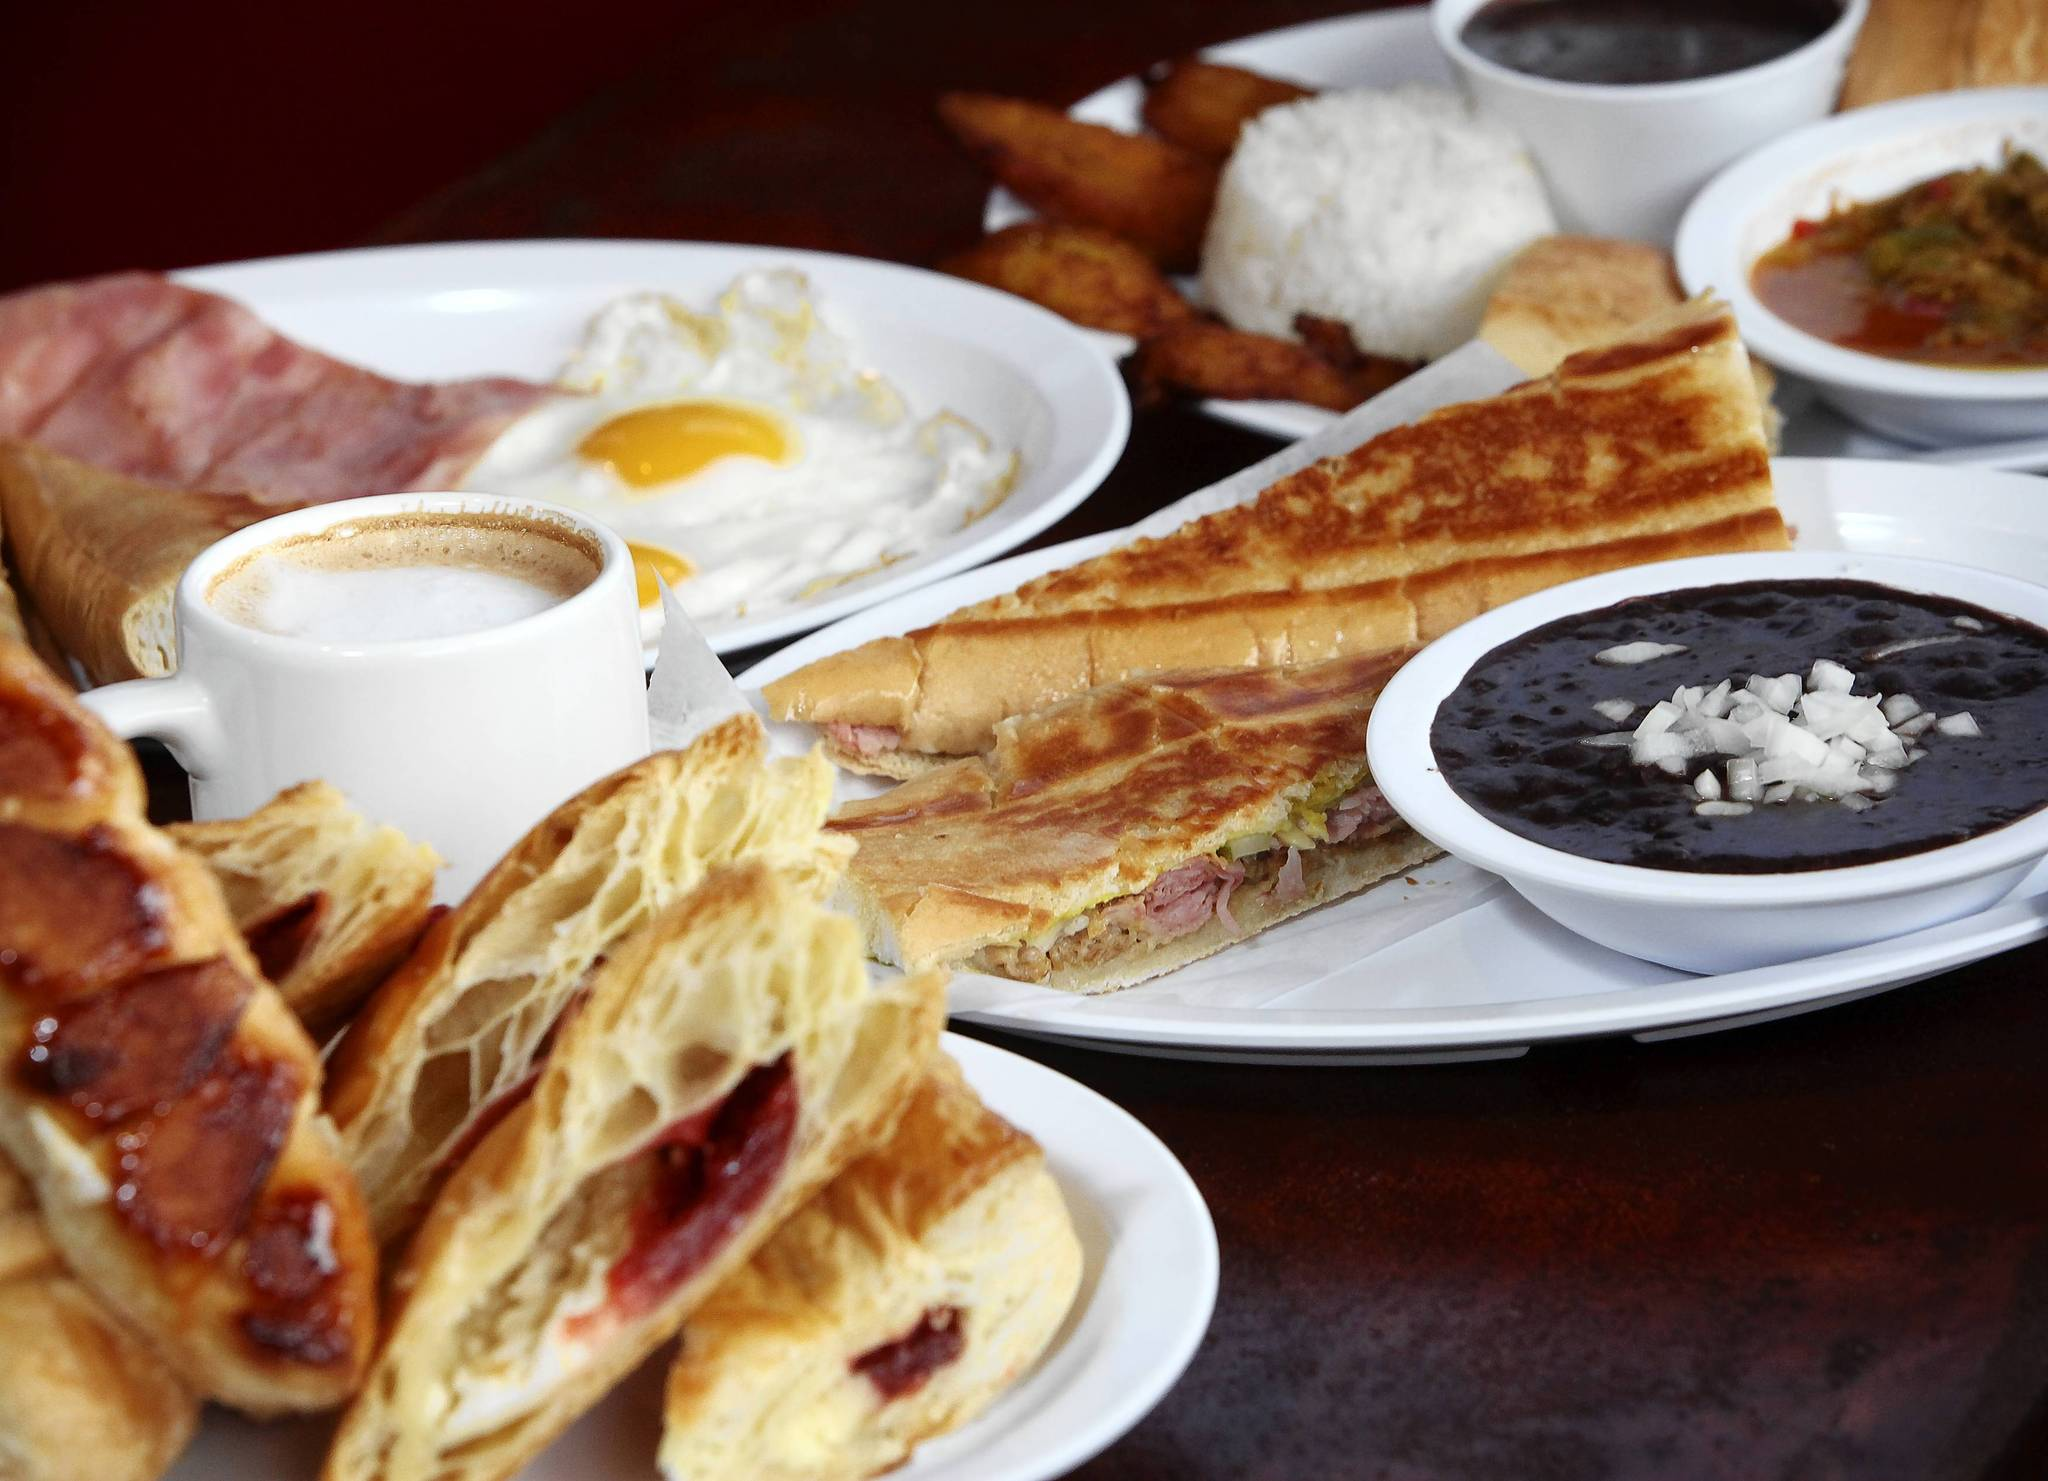 An assortment of food from Yaya's Cuban Cafe & Bakery: ropa vieja, Cuban sandwich, pastries and breakfast items.